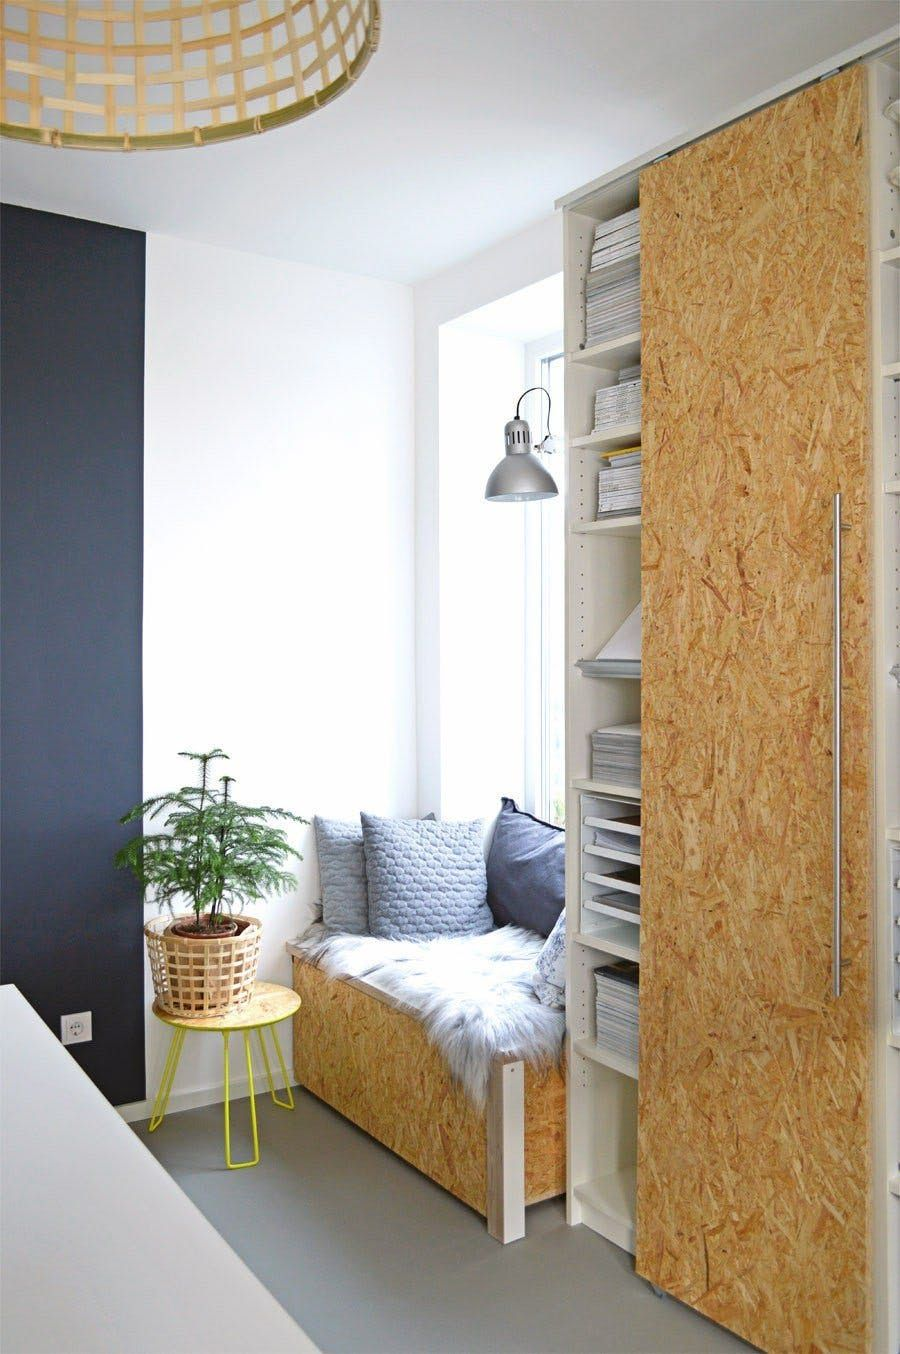 How To Hack Sliding Doors For Ikea Billy Bookcases Ikea Billy Bookcase Ikea Bookcase Ikea Billy Bookcase Hack